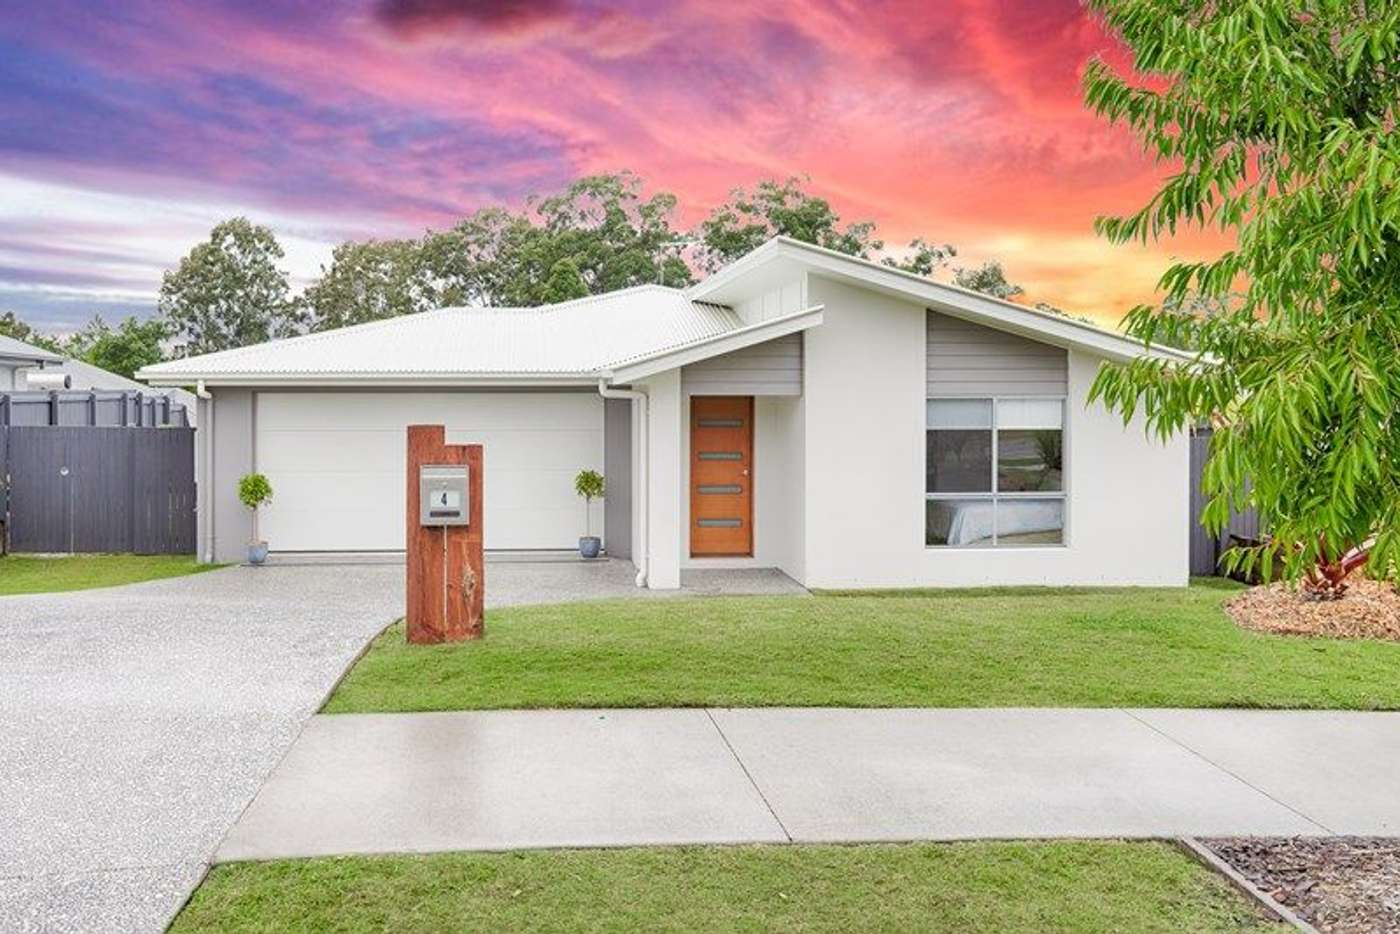 Sixth view of Homely house listing, 4 Wheeldon Court, Cooroy QLD 4563